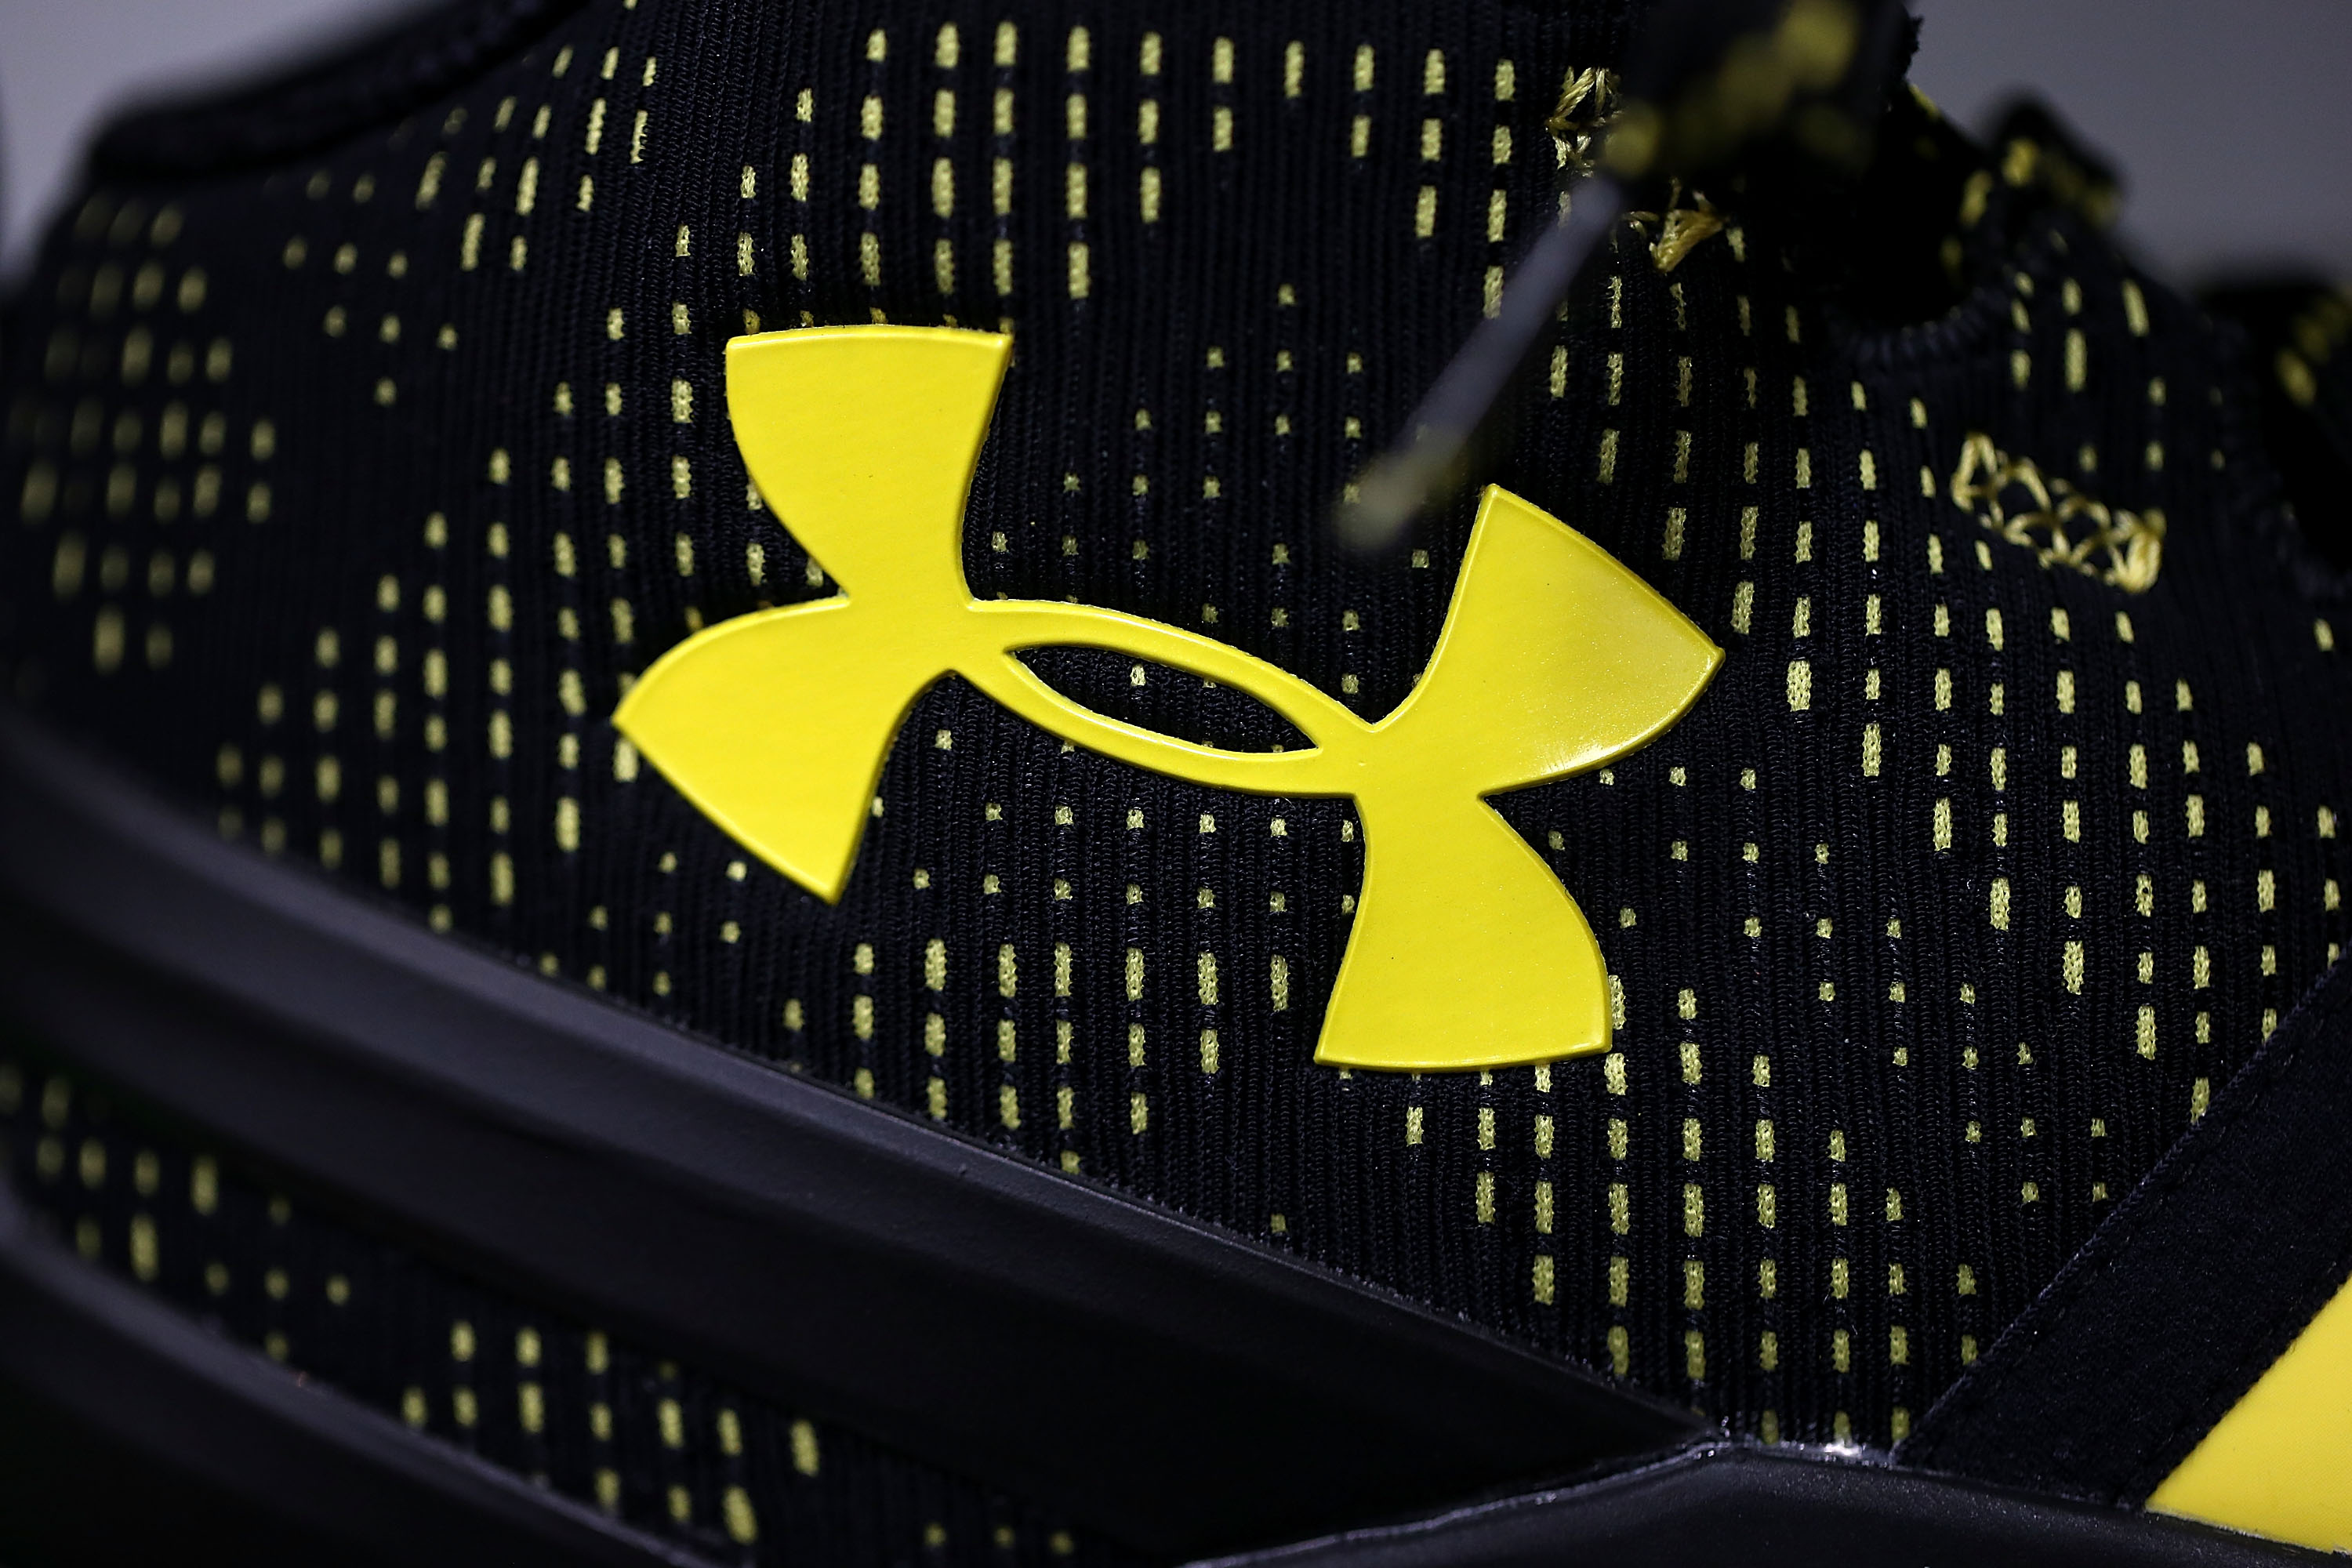 Under Armour shares surge after Topping Q4 Estimates